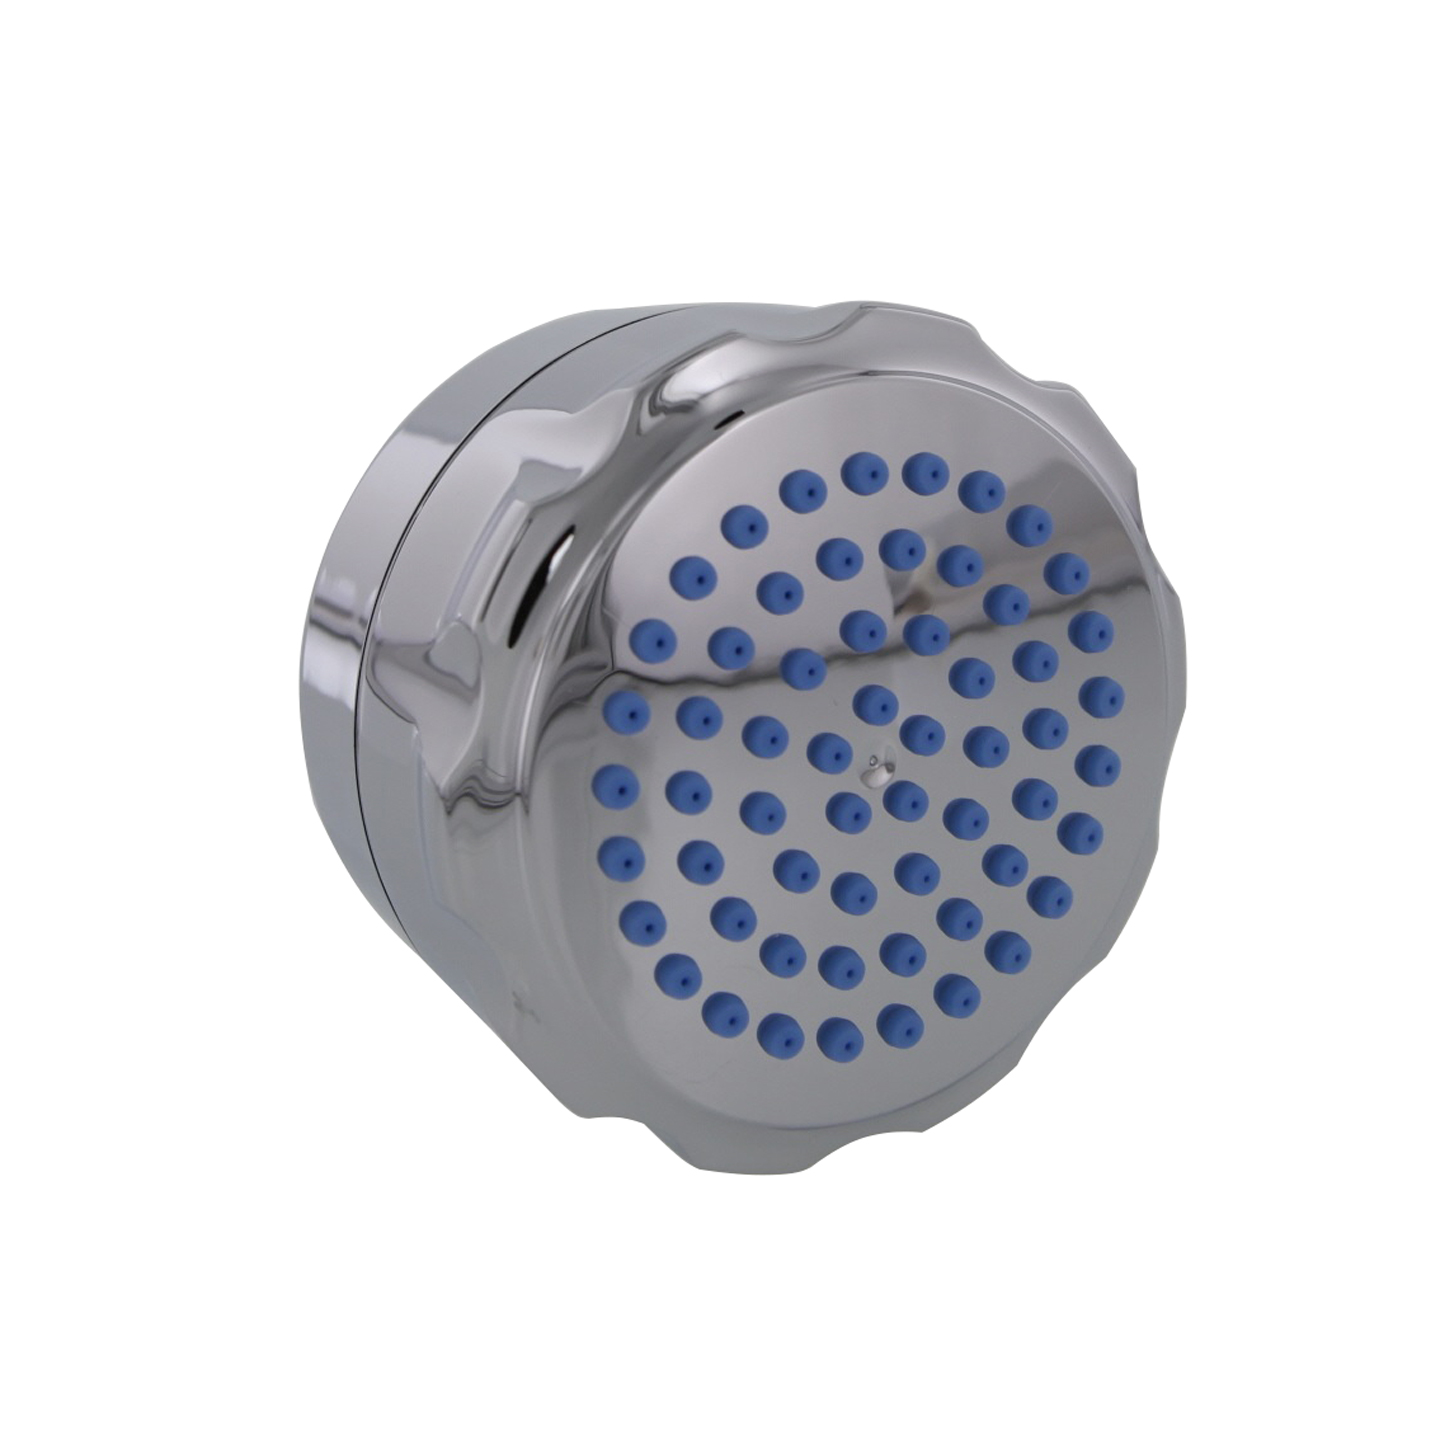 showerhead shower for stage hard skin output harmful filter high substances chlorine and water hair sprite prevents itm removes